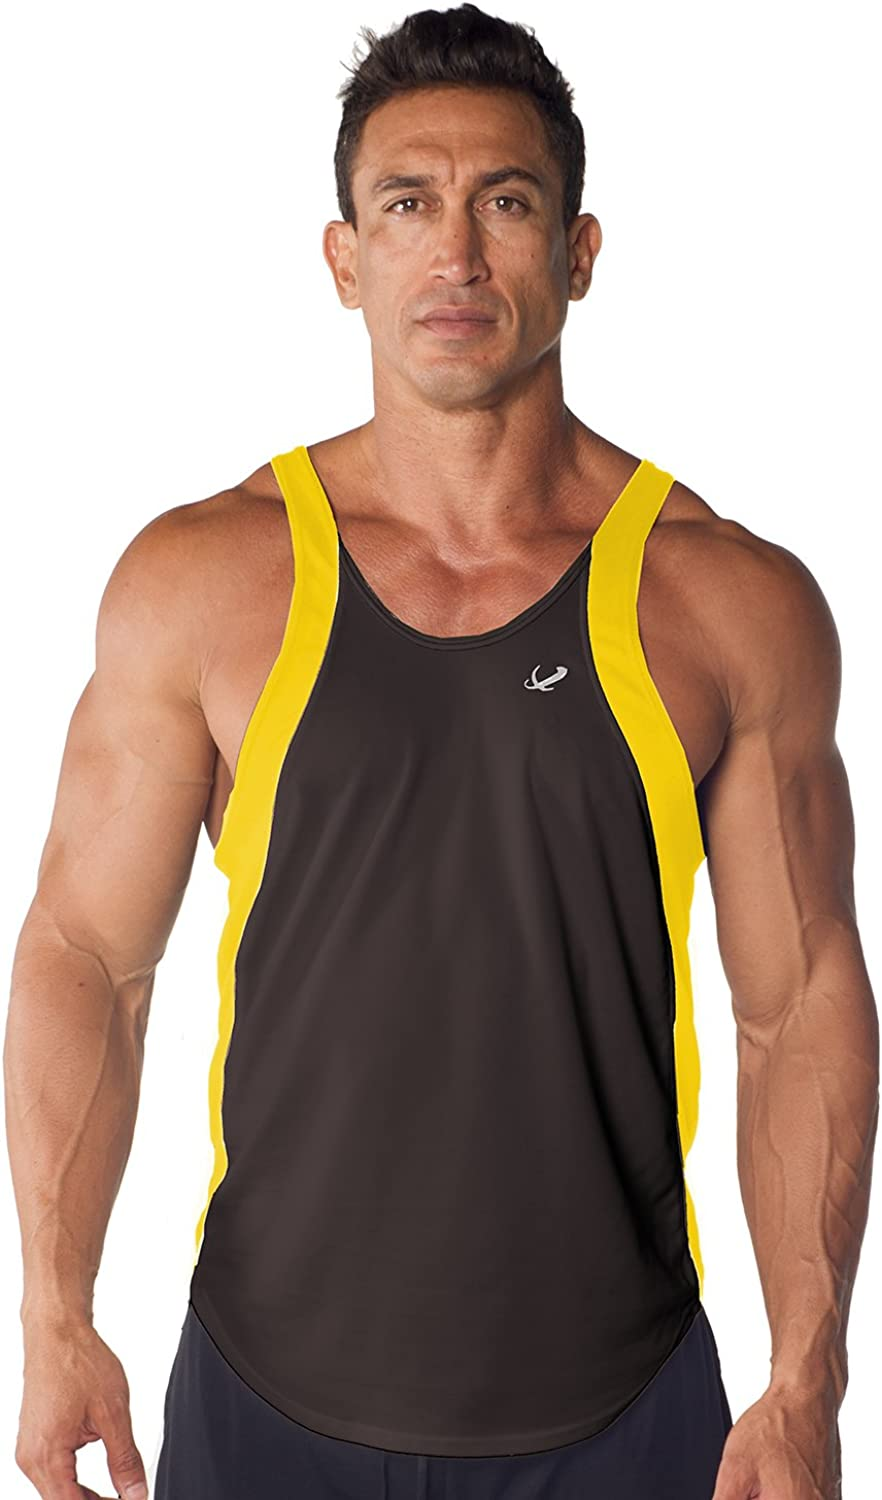 Mens Athletic Dri-fit Two-Tone Stringer by Tank Top Popular product half Pitbull